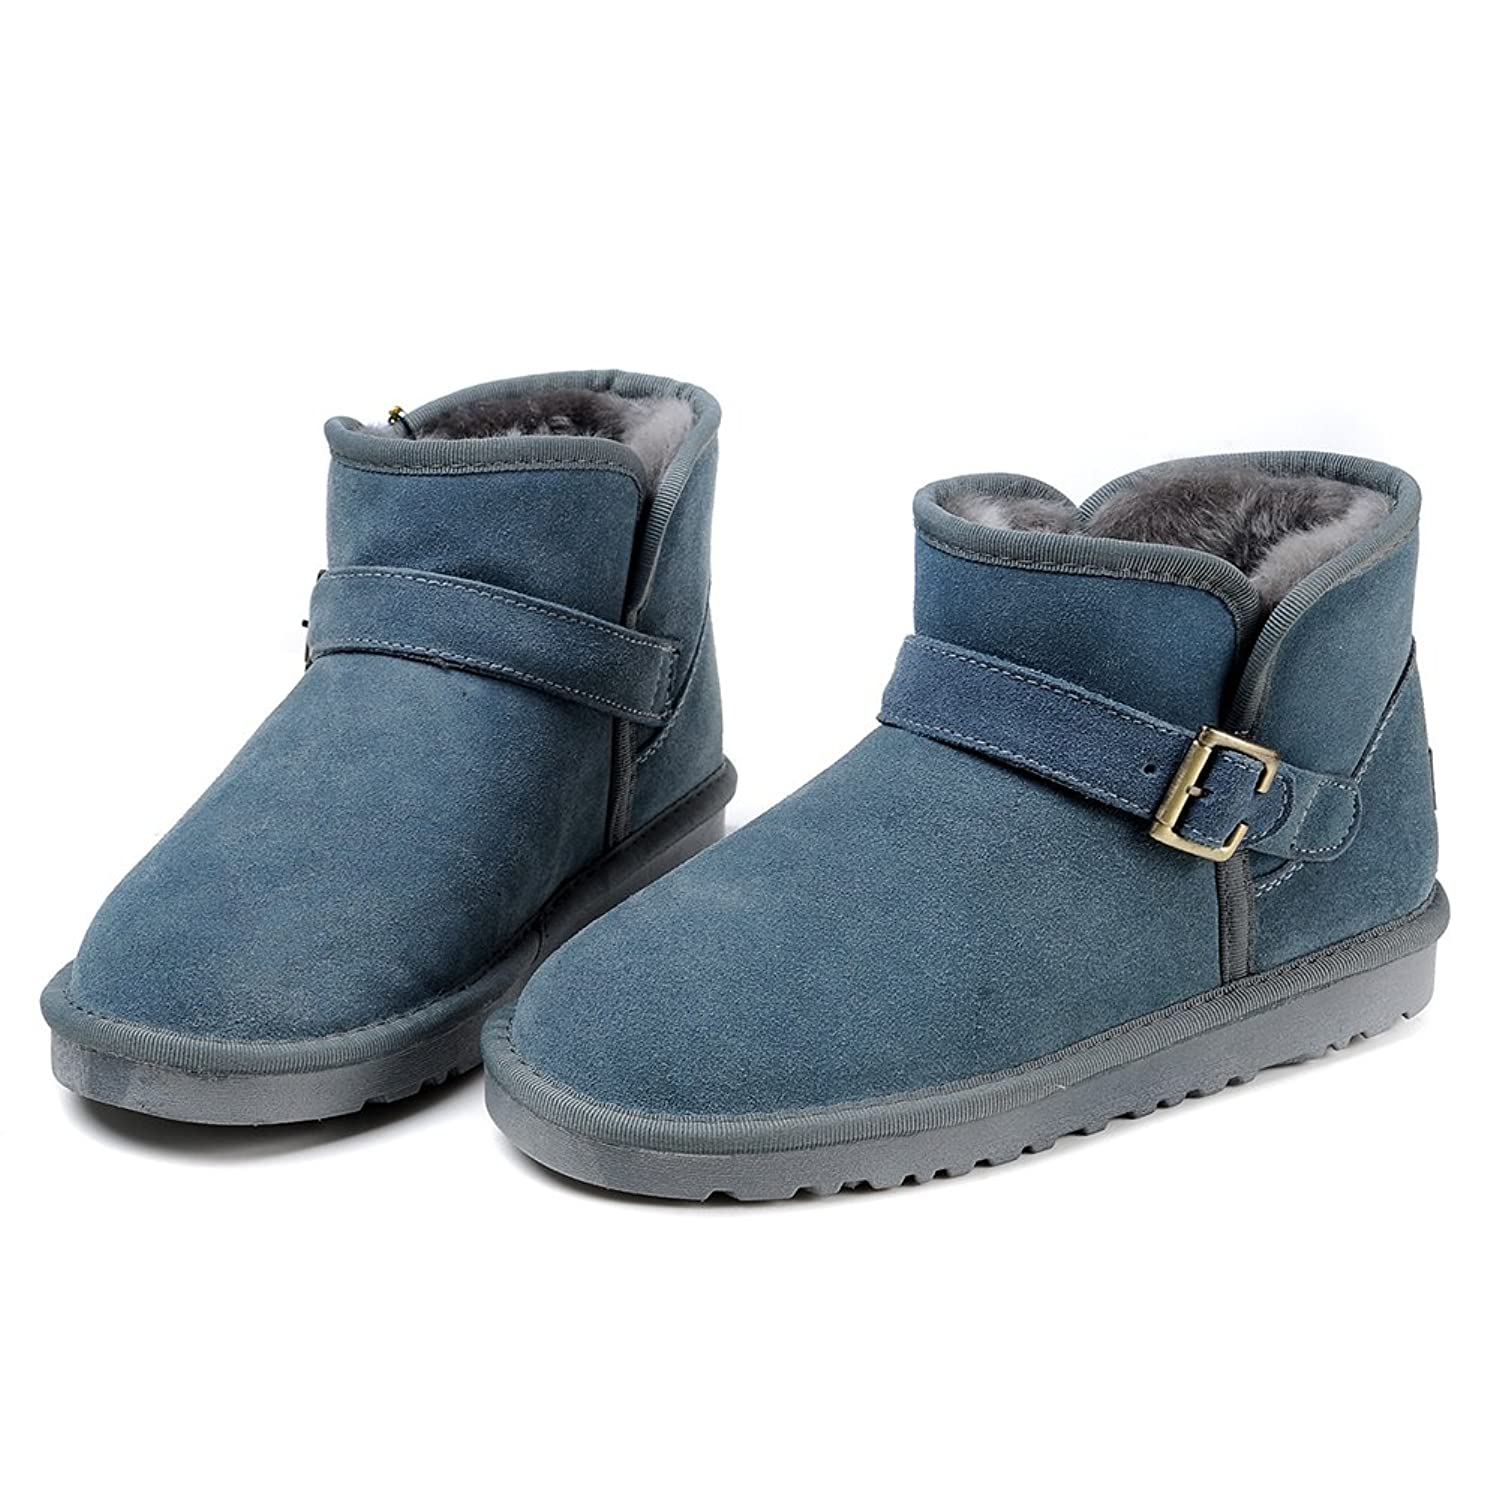 MILANAO Women Winter Buckle Warm Leather Ankle Snow Boots: Amazon.co.uk:  Shoes & Bags